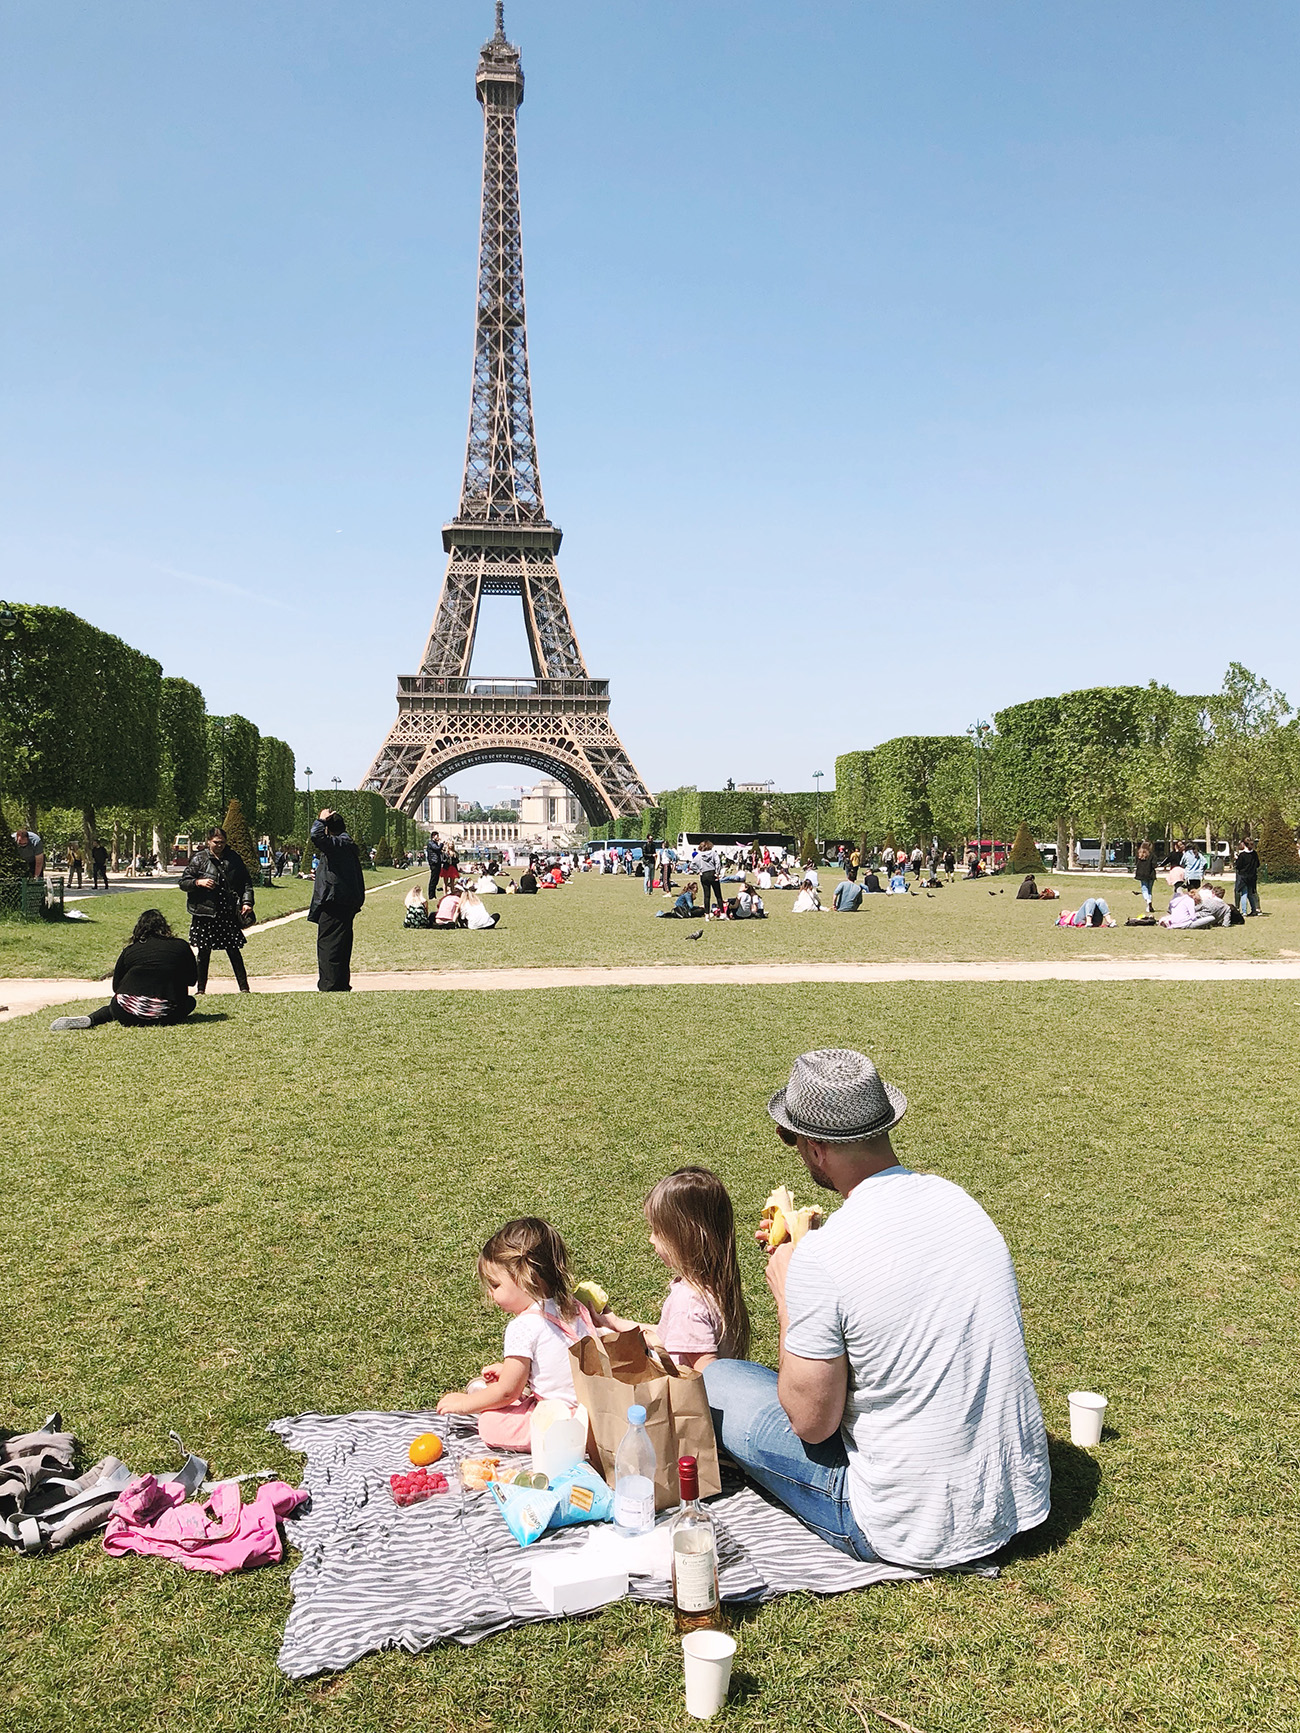 Picnic by the Eiffel Tower